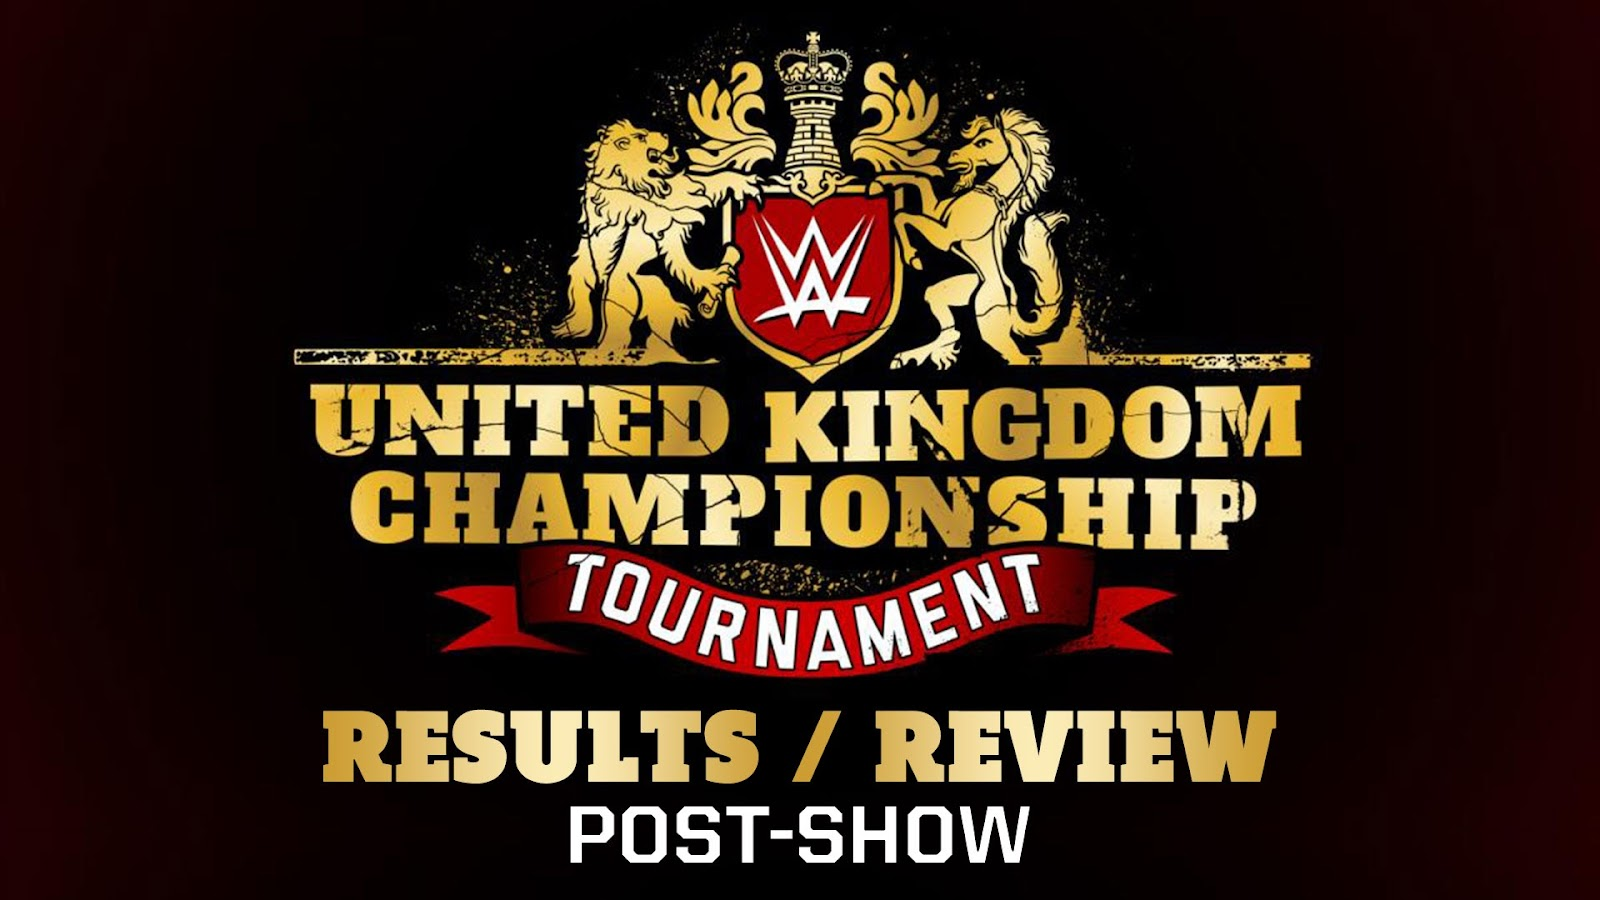 WWE United Kingdom Championship Tournament Recap and Review Podcast